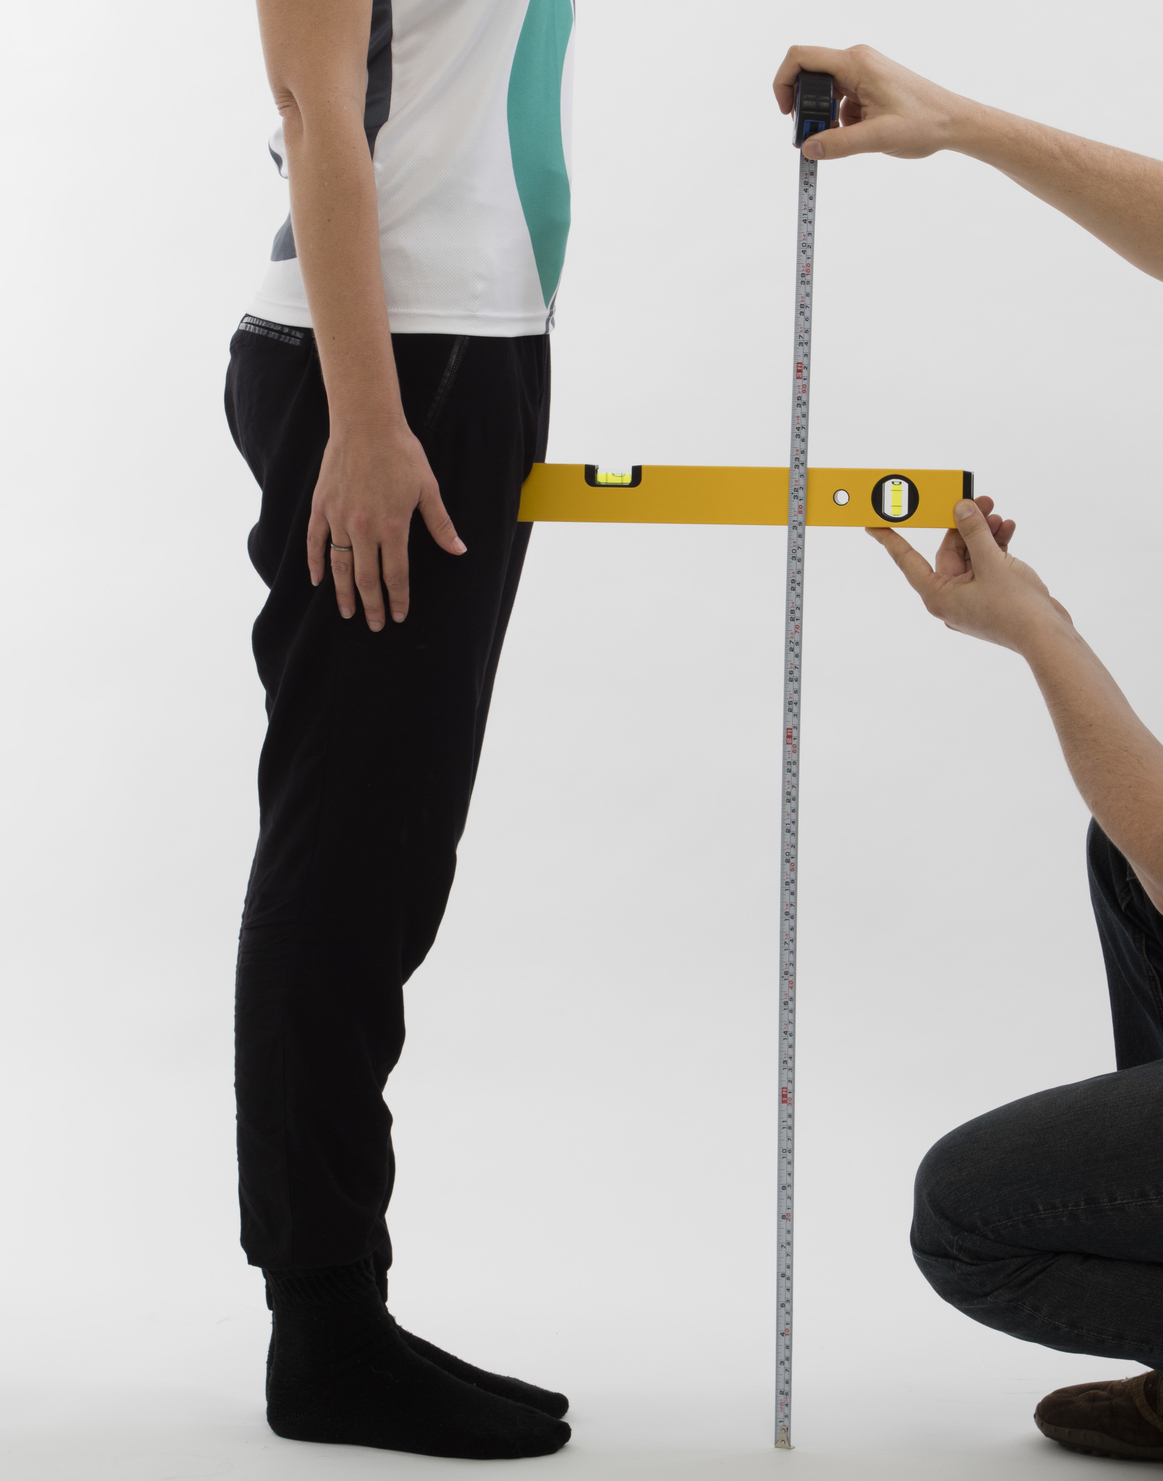 Measuring inseam